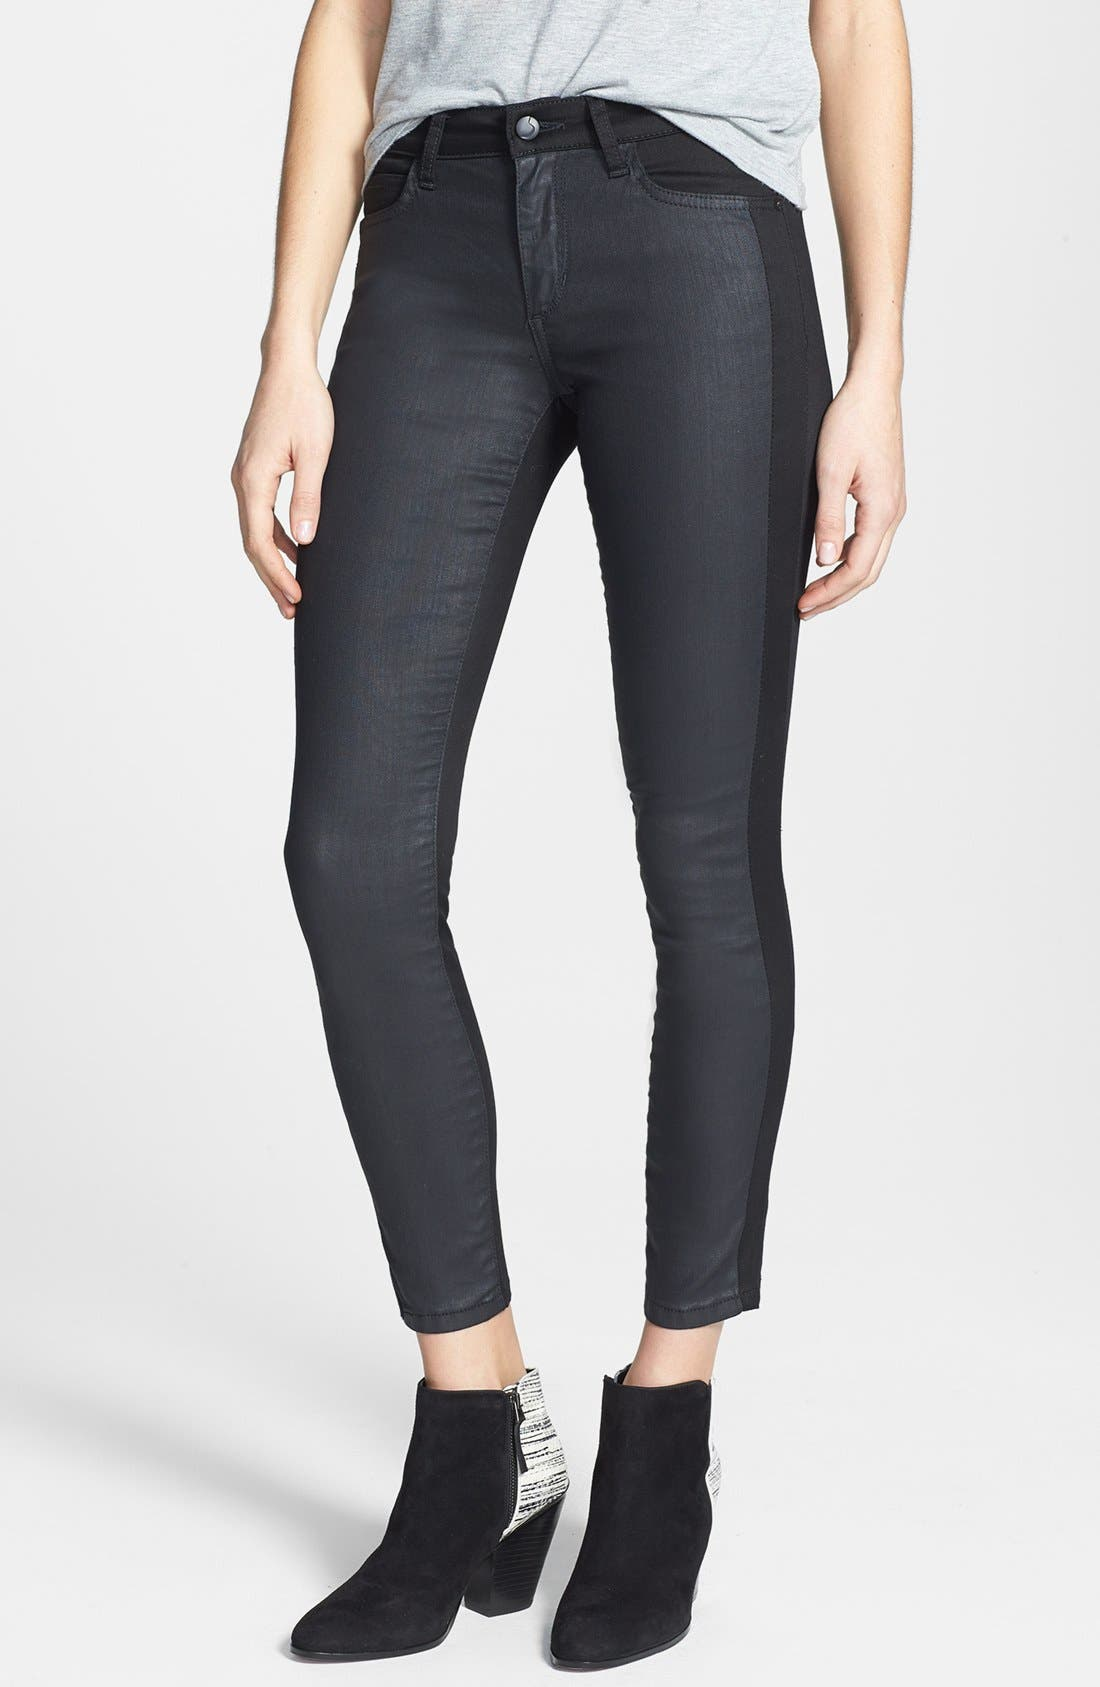 Alternate Image 1 Selected - Joe's 'The Oblique' Contrast Panel Crop Skinny Jeans (Kathy)